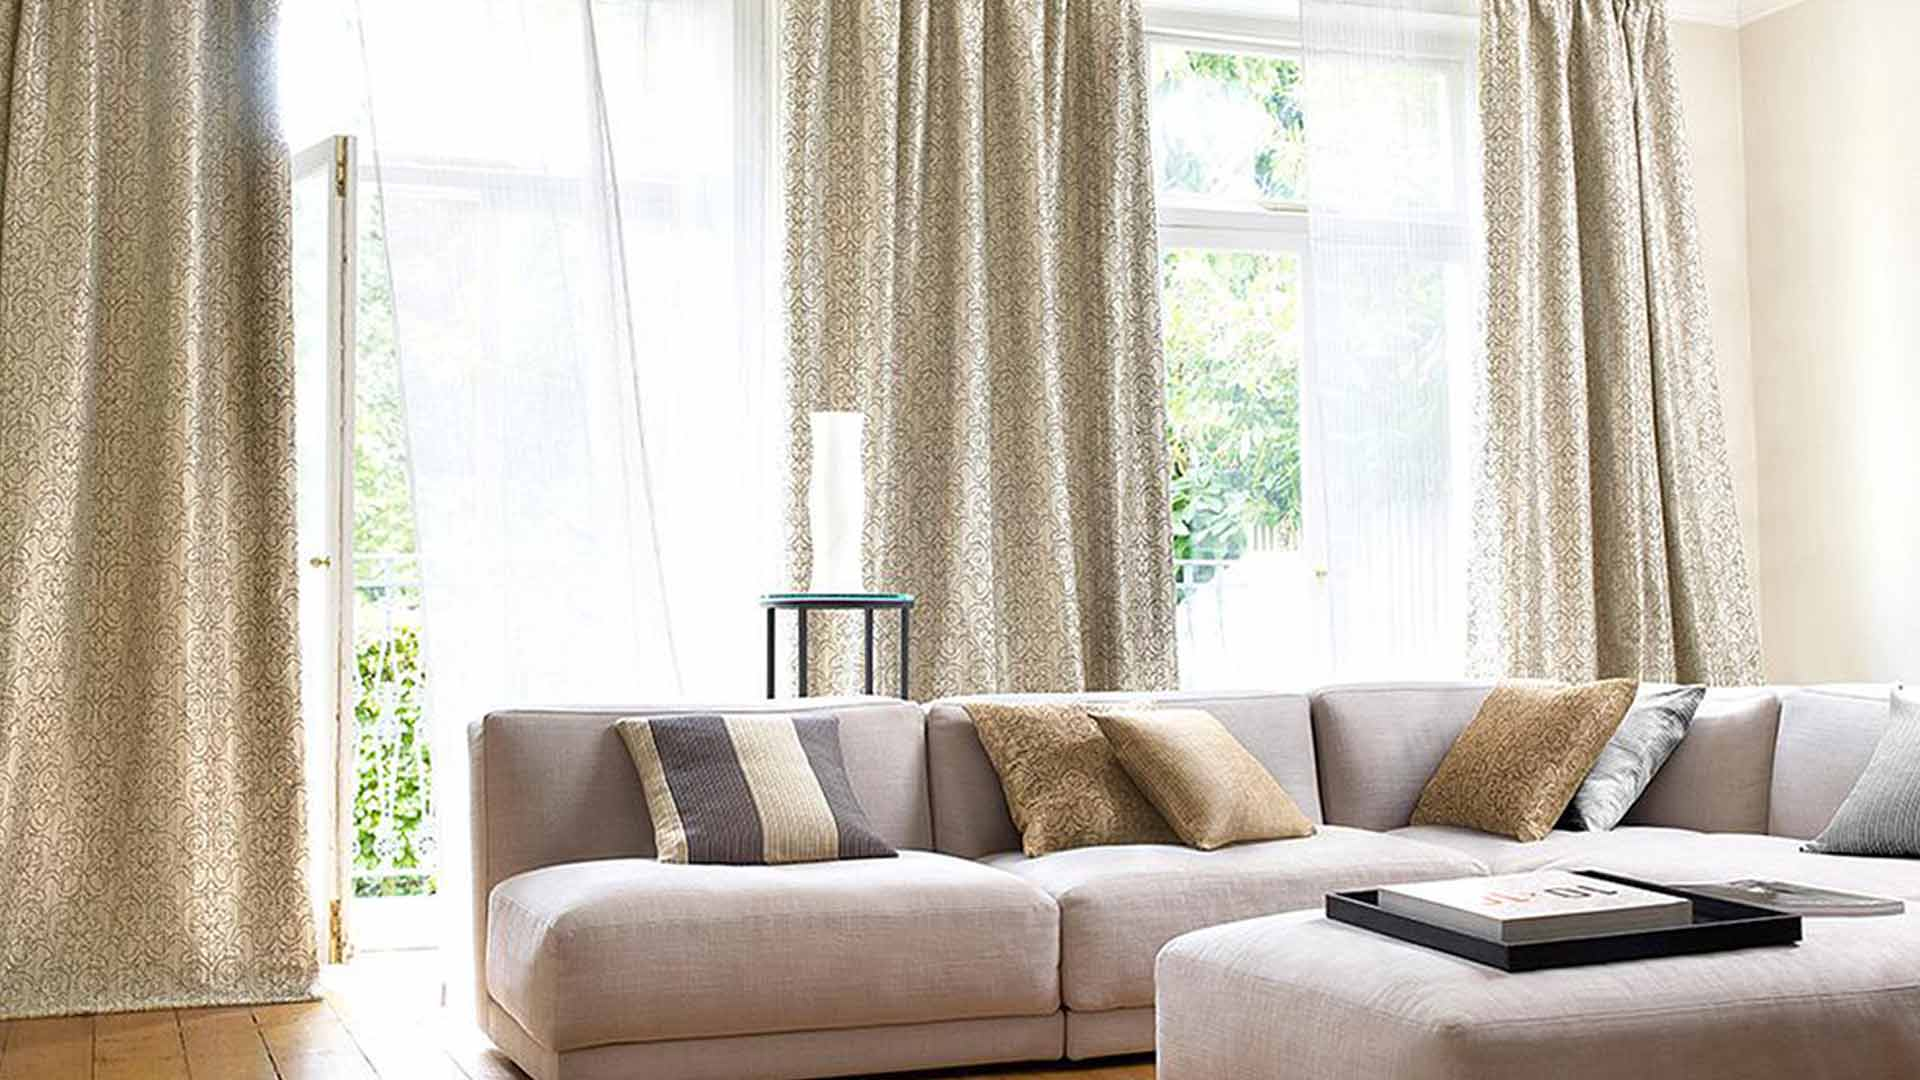 Zeppel Tussah Curtains